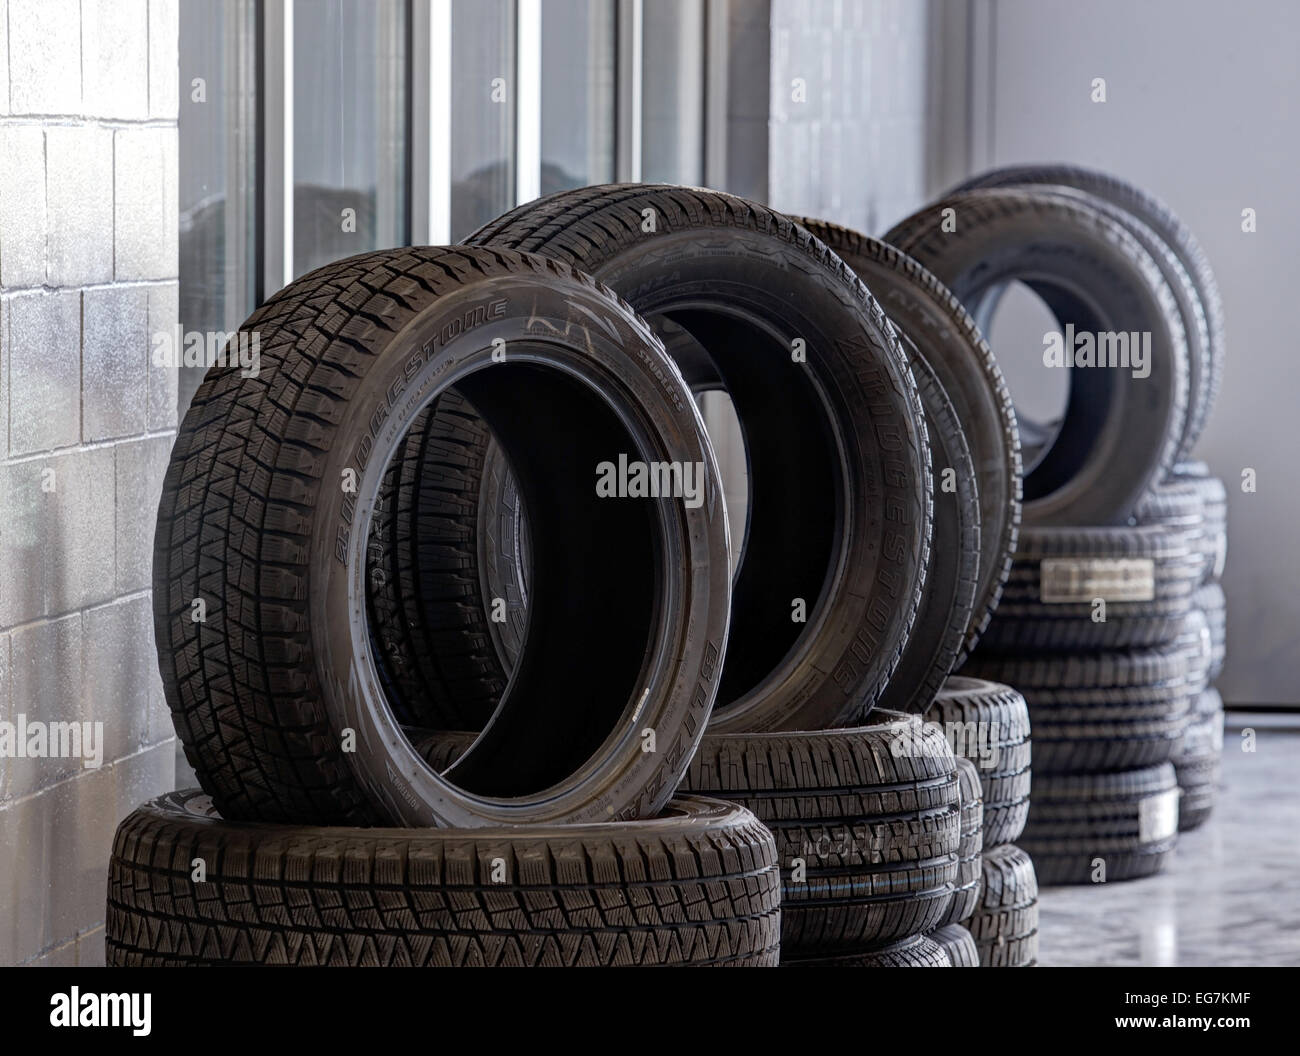 Stacks of tires, with tread patterns for various driving conditions, for sale in an automotive repair garage. - Stock Image